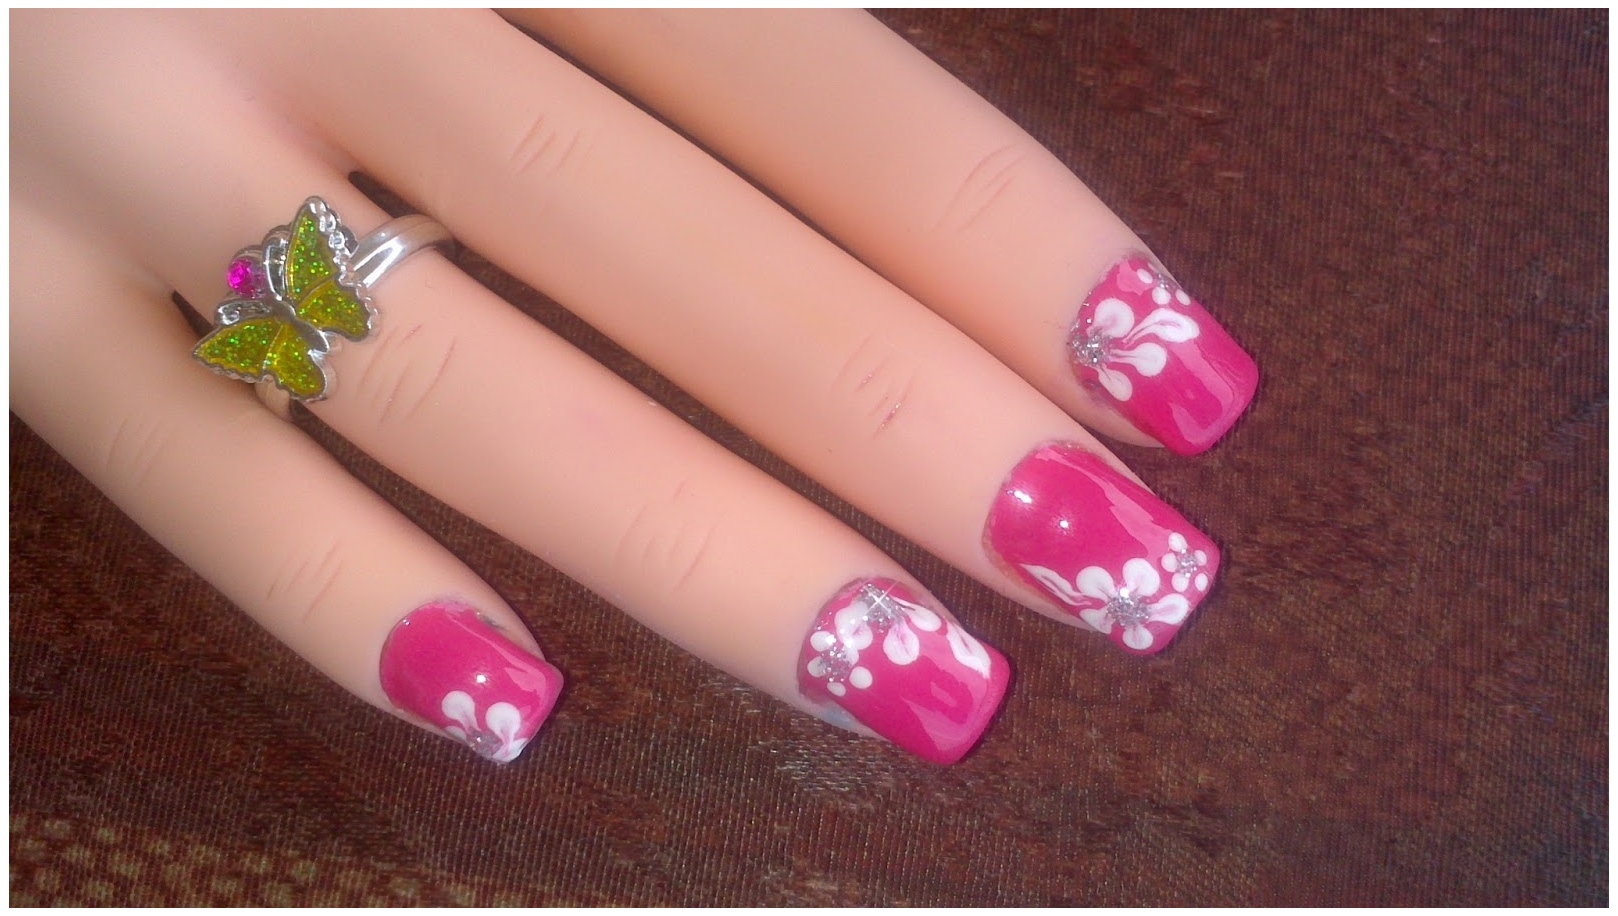 New nails design choice image nail art and nail design ideas best nails designs 2017 try in future fashion easy beautiful new best nail 2017 dotted lovely prinsesfo Choice Image